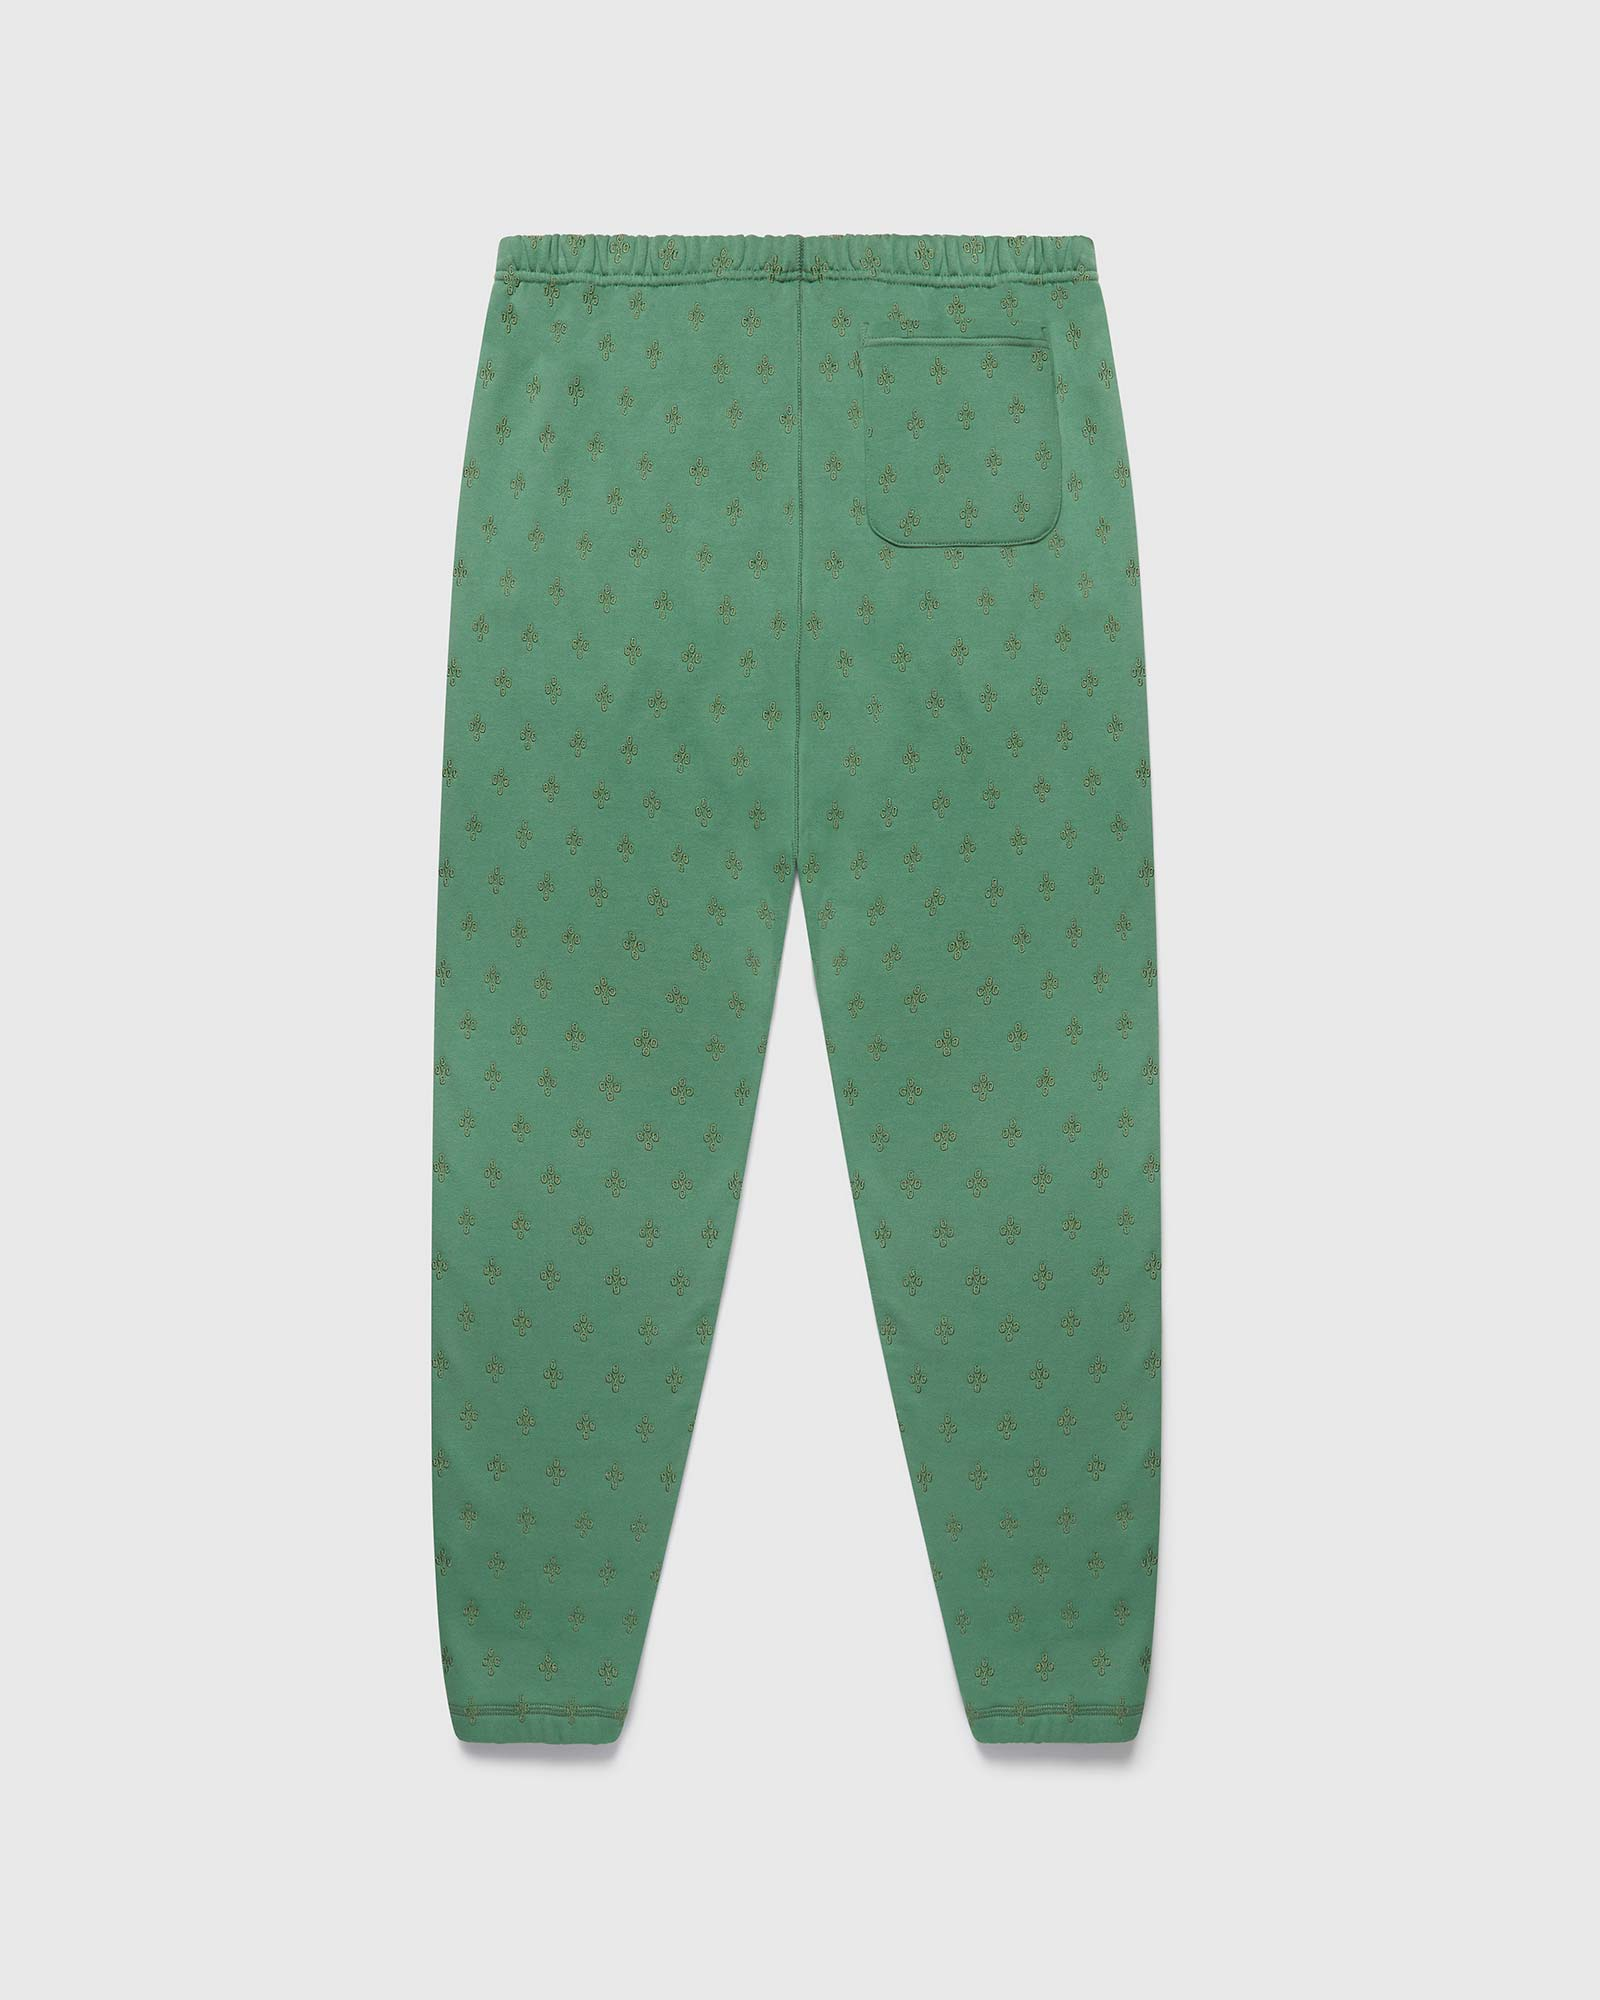 MONOGRAM SWEATPANT - EVERGREEN IMAGE #2